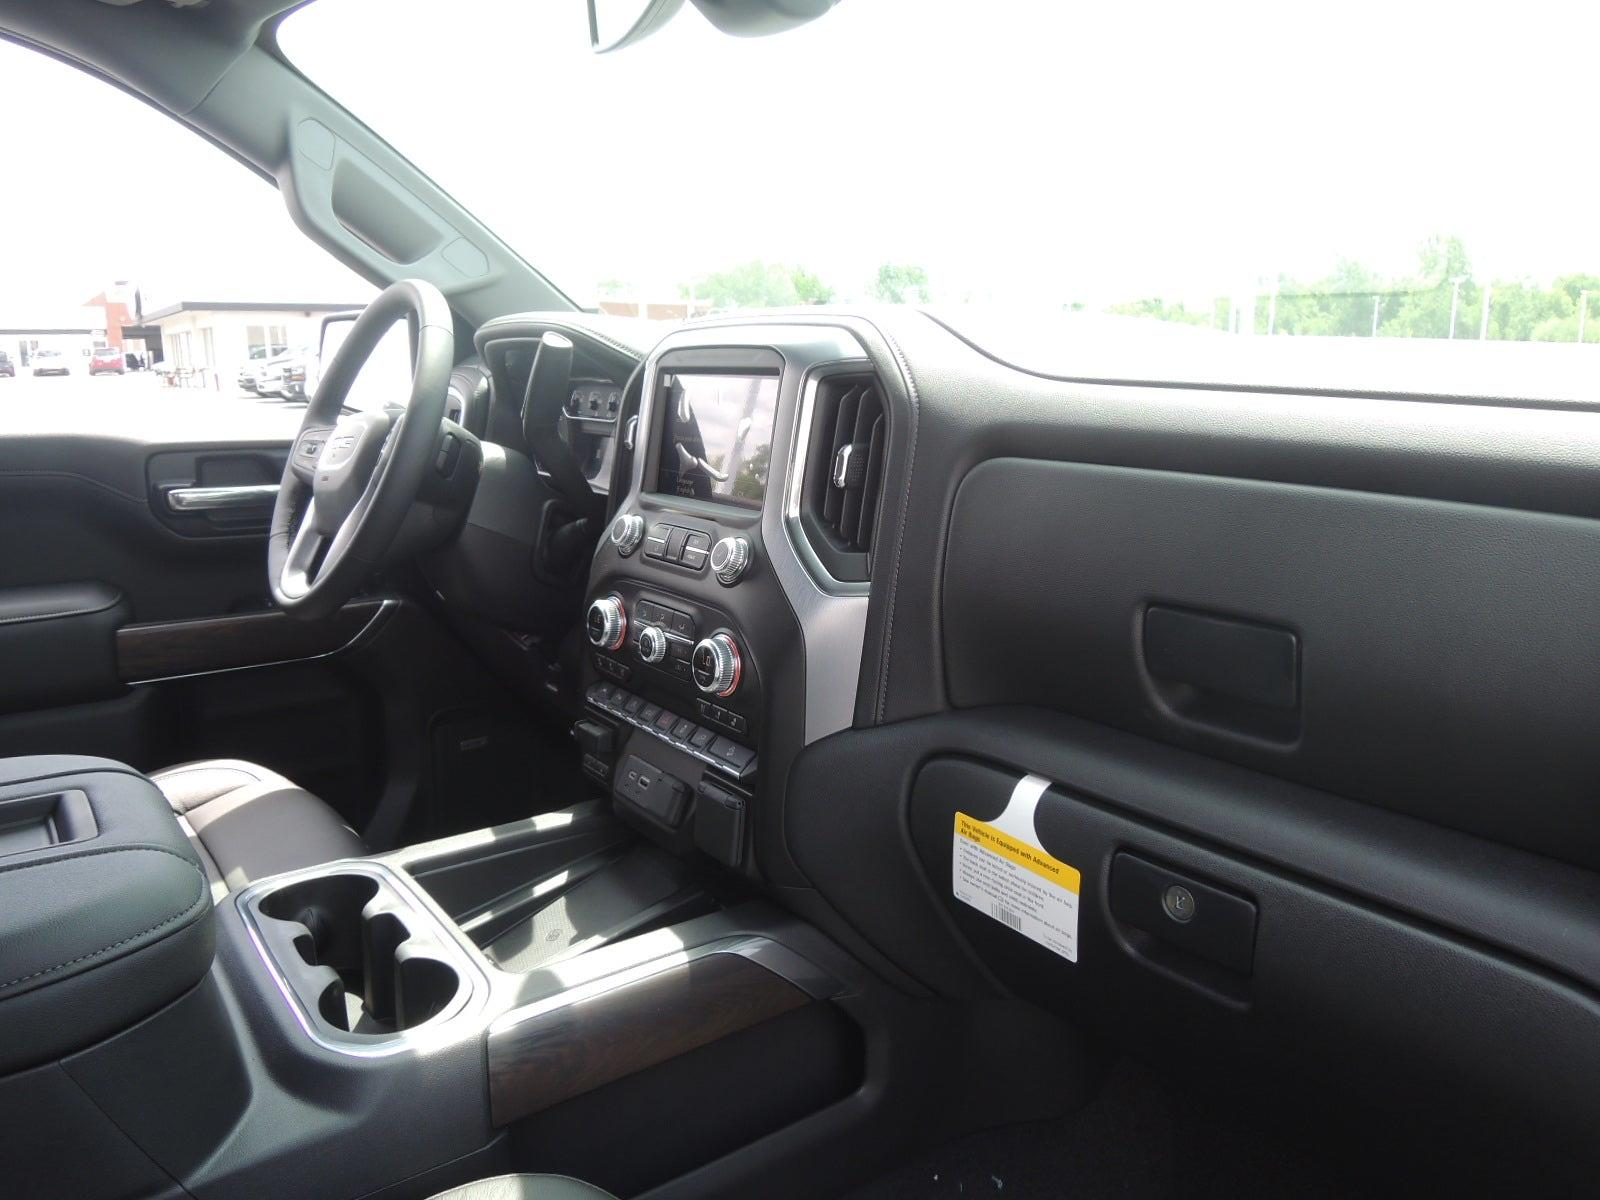 2021 GMC Sierra 1500 Crew Cab 4x4, Pickup #MT282 - photo 14